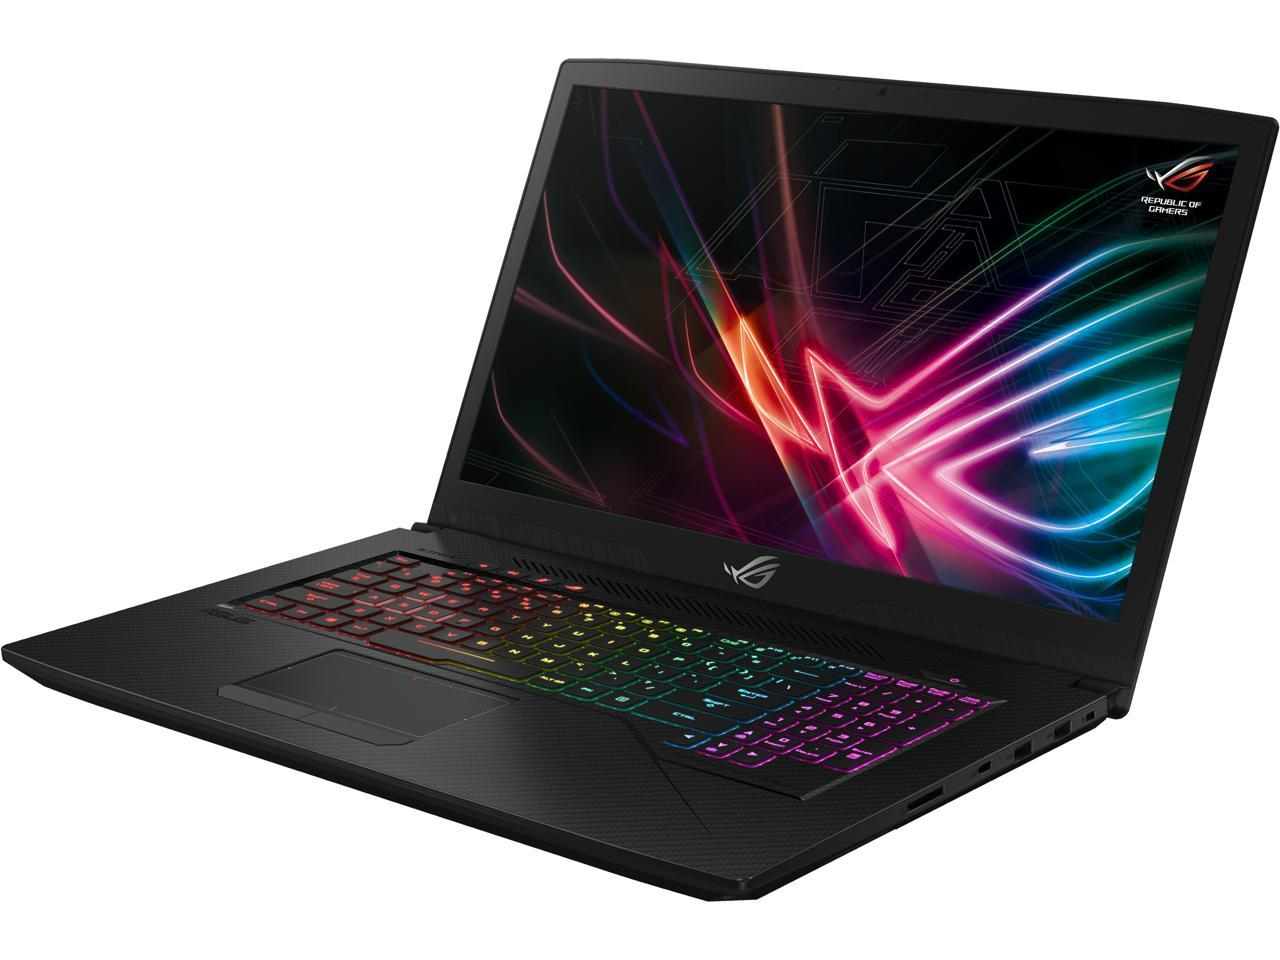 "Asus 17.3"" Gaming Laptop (Core i7 / 16GB / 1TB HDD/128GB SSD)"